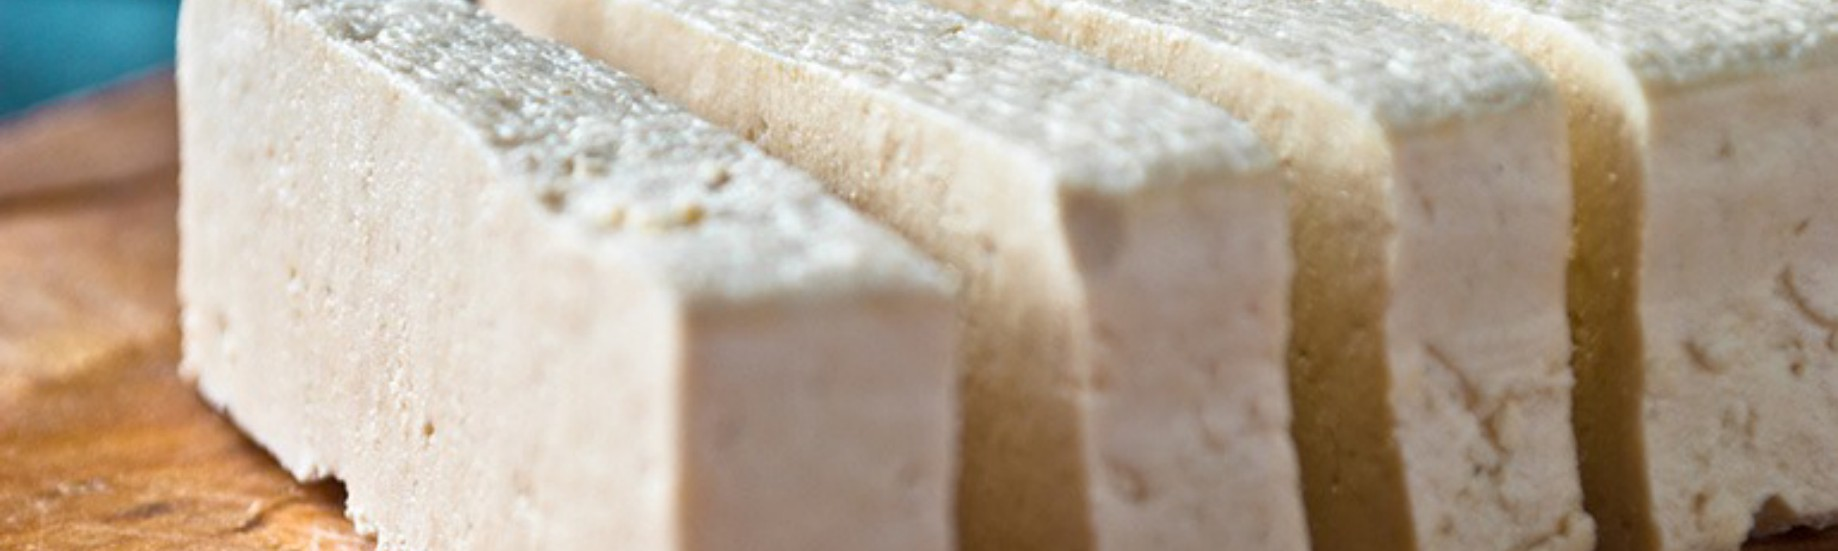 Does Tofu Go Bad? You Need to Read This! - No Meal No Health - Medium